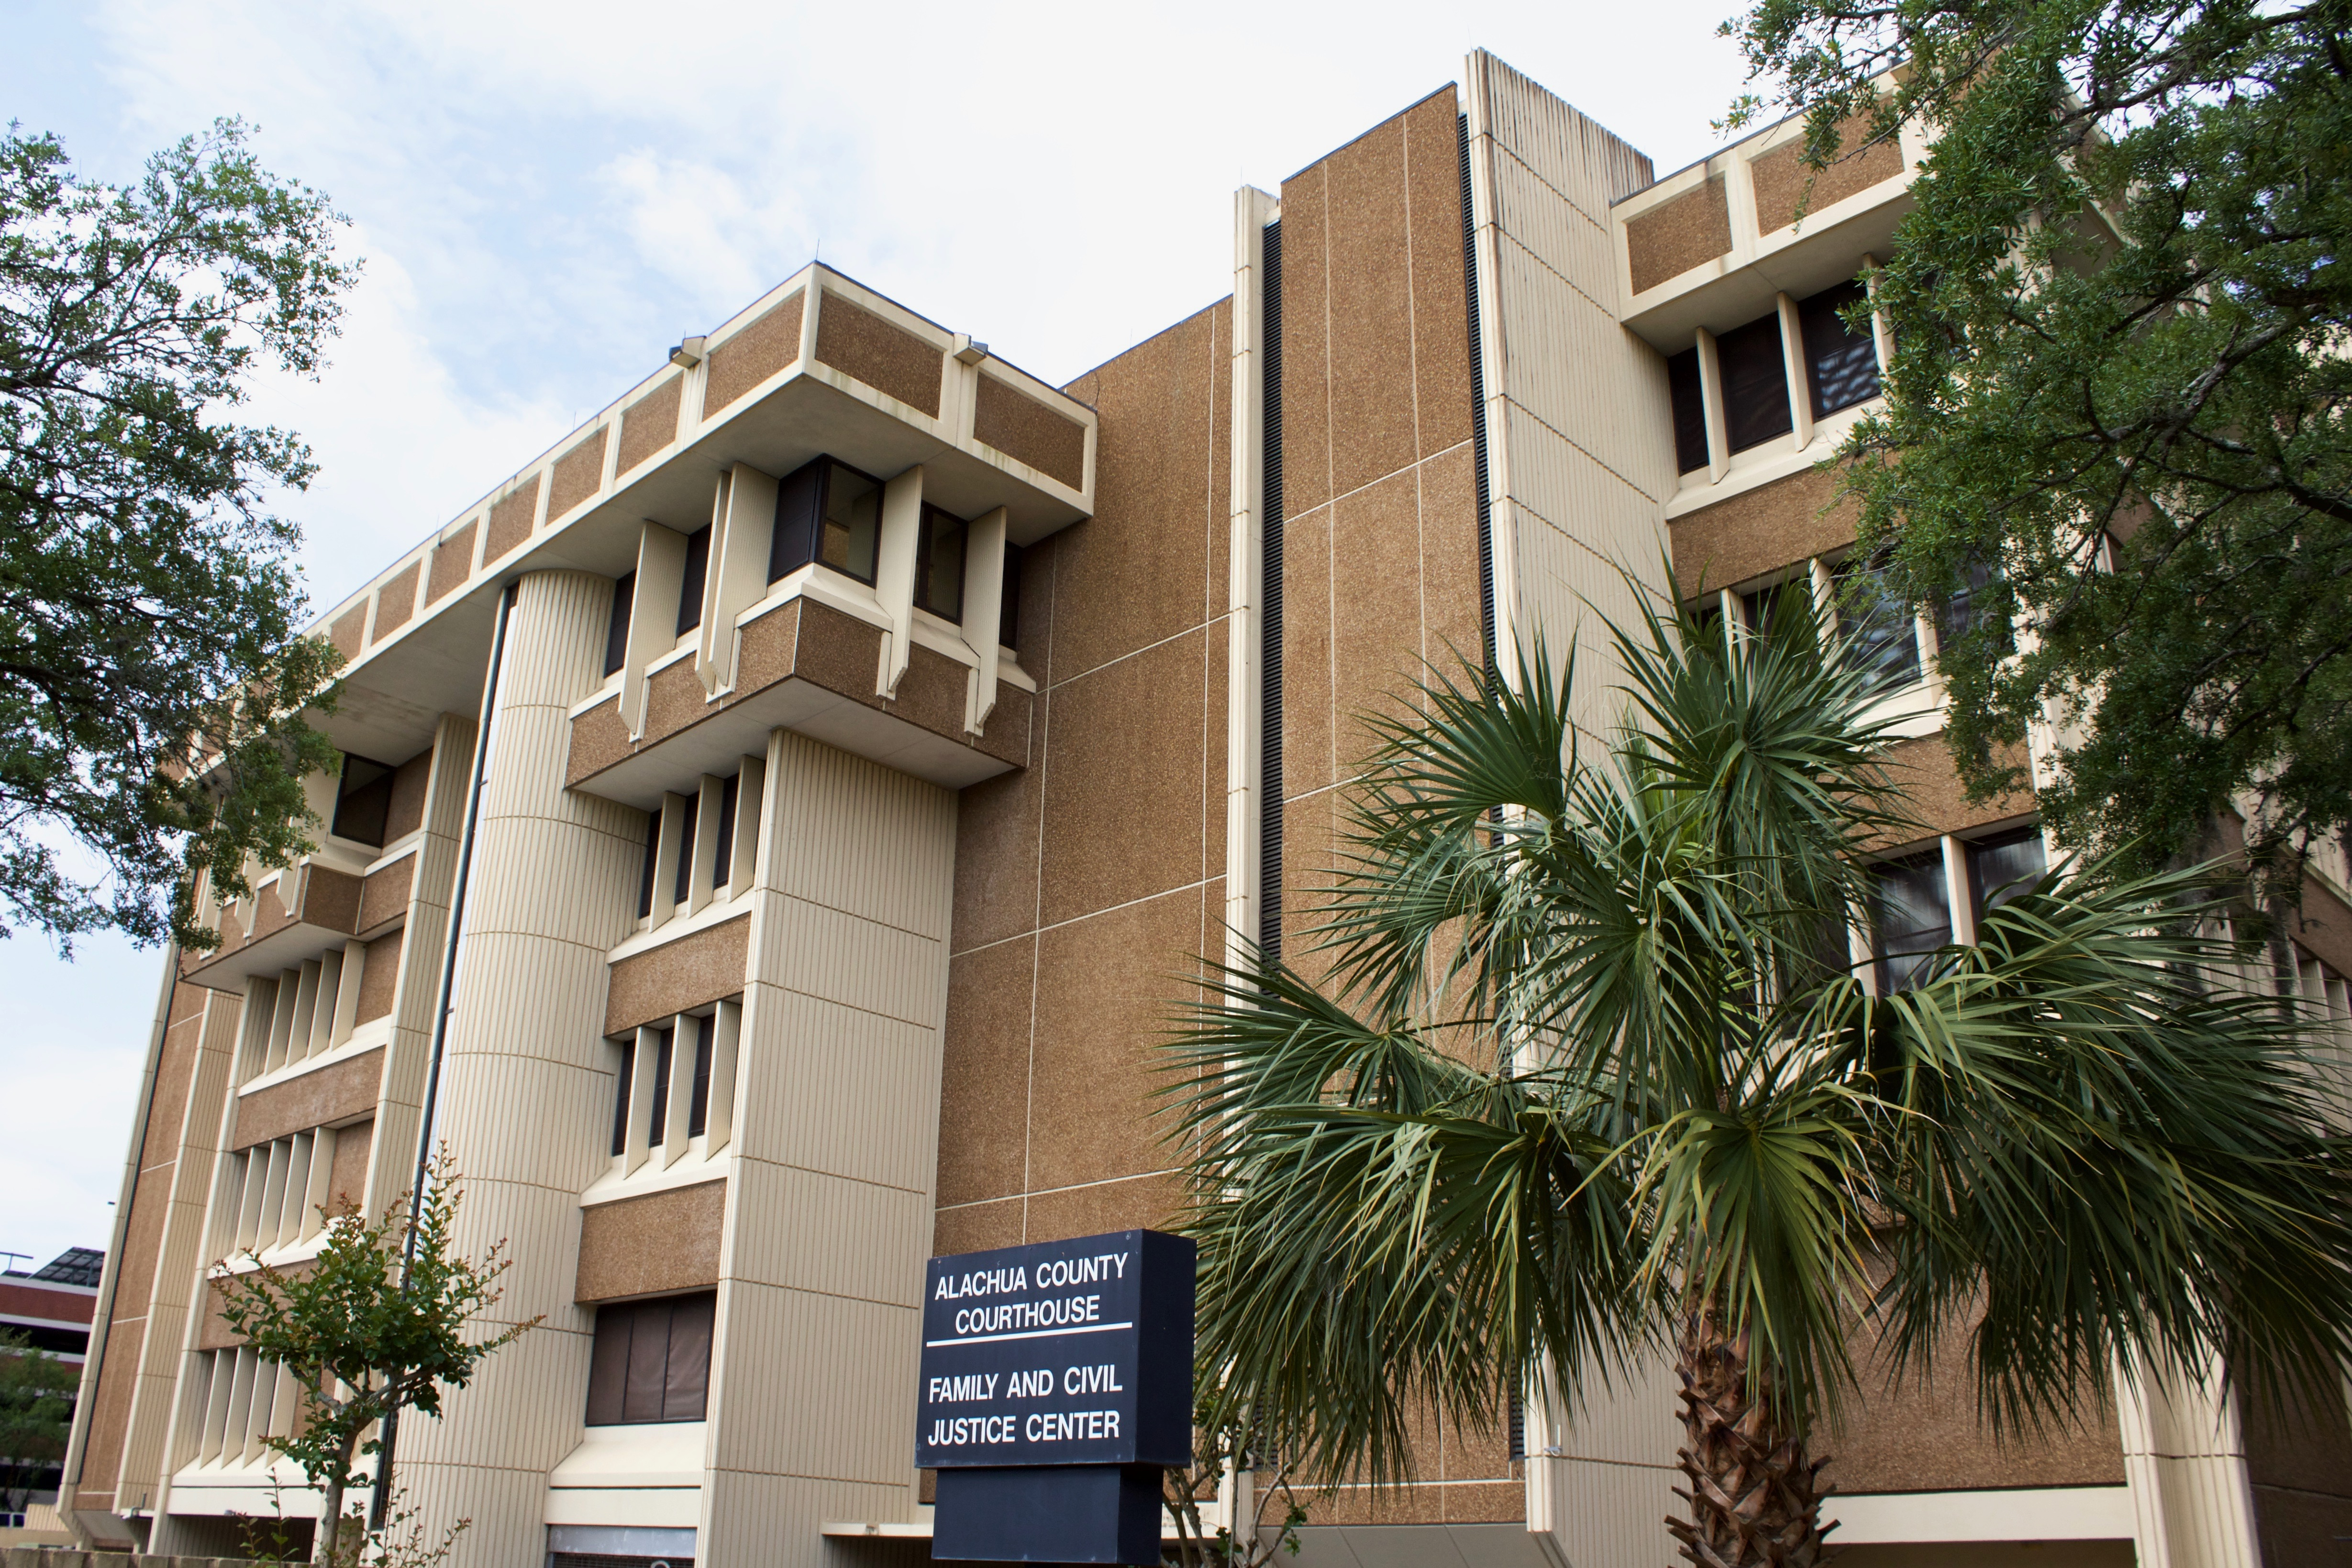 Alachua County Courthouse, Family and Civil Justice Center